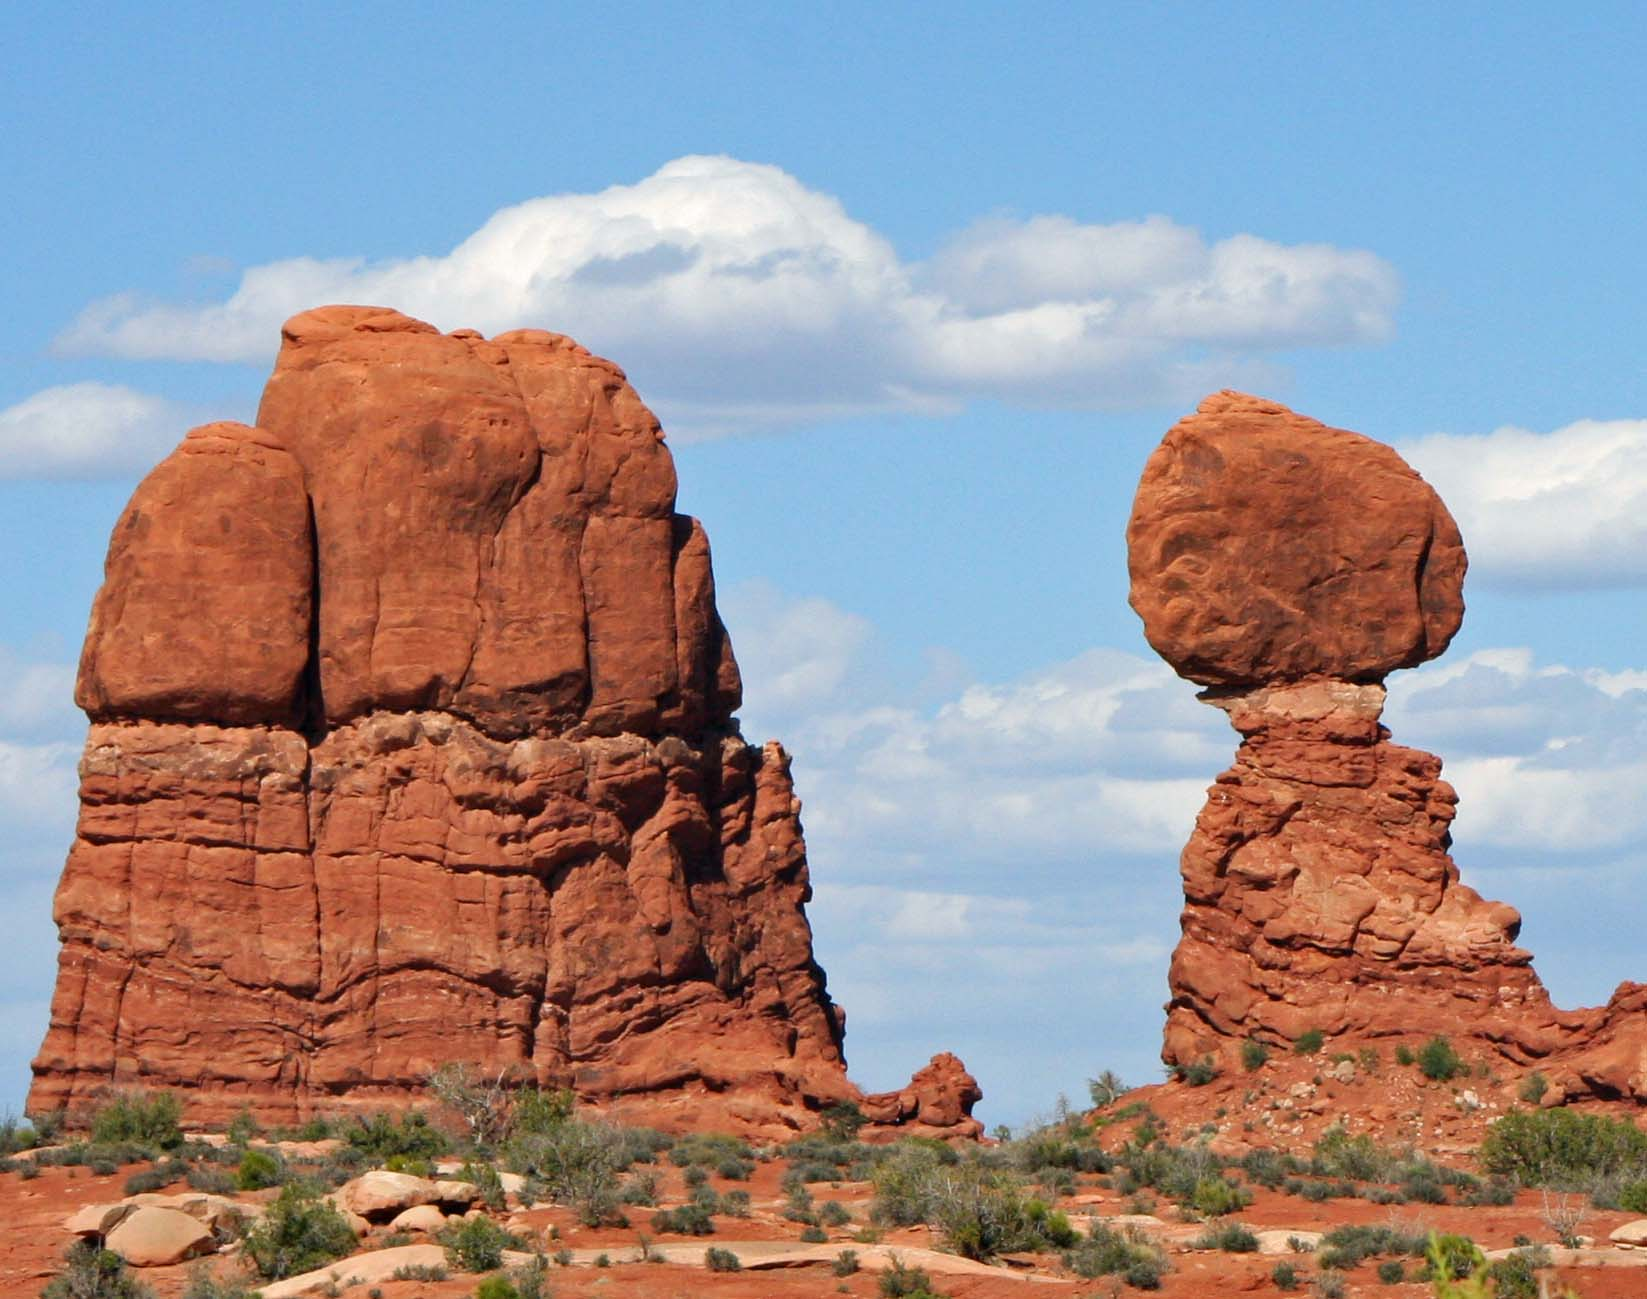 Rock sculpture at Arches Natioal park. Photo by Curtis Mekemson.